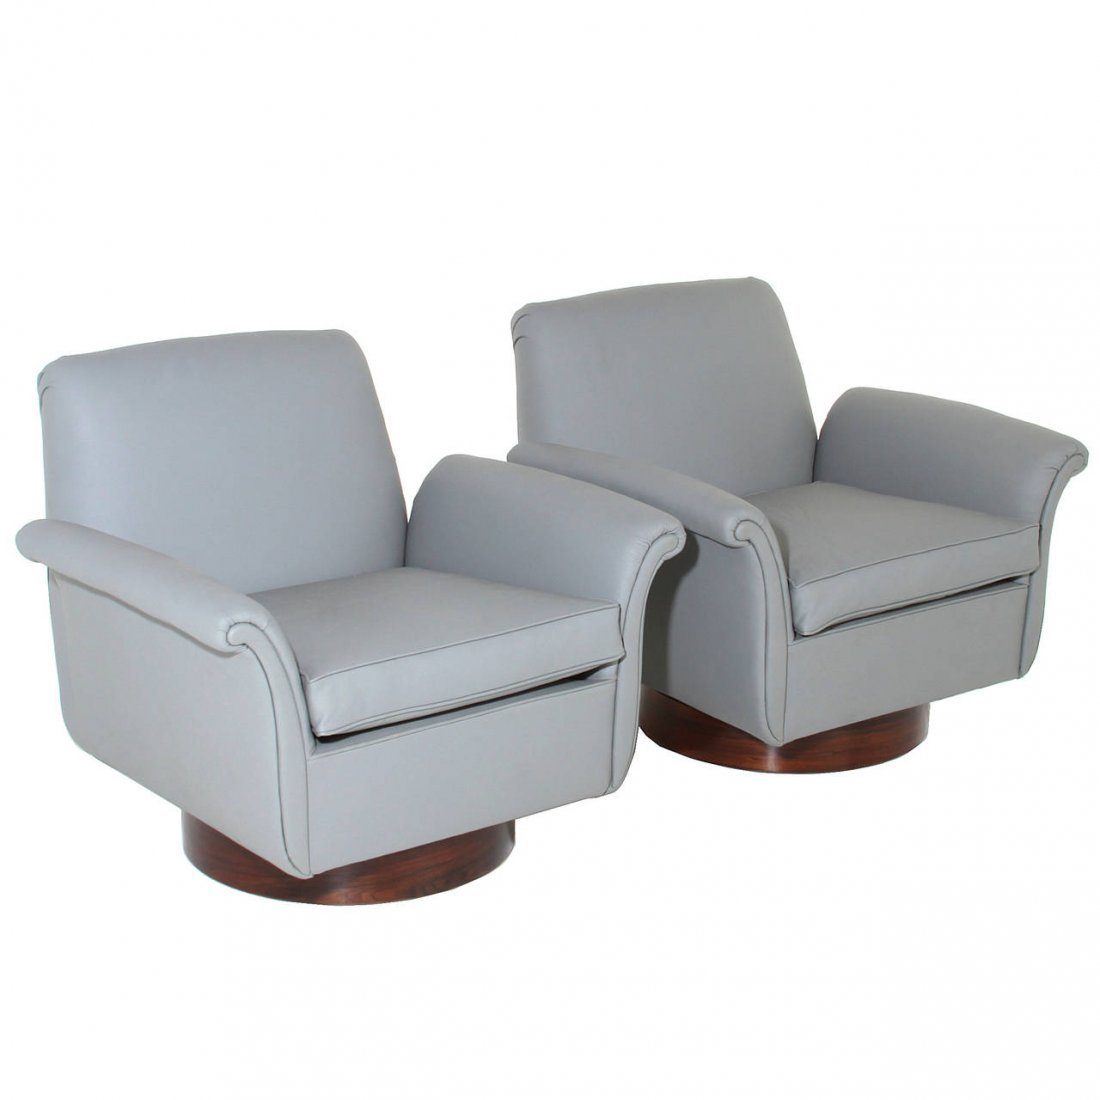 Pair of Brazilian Armchairs (2)